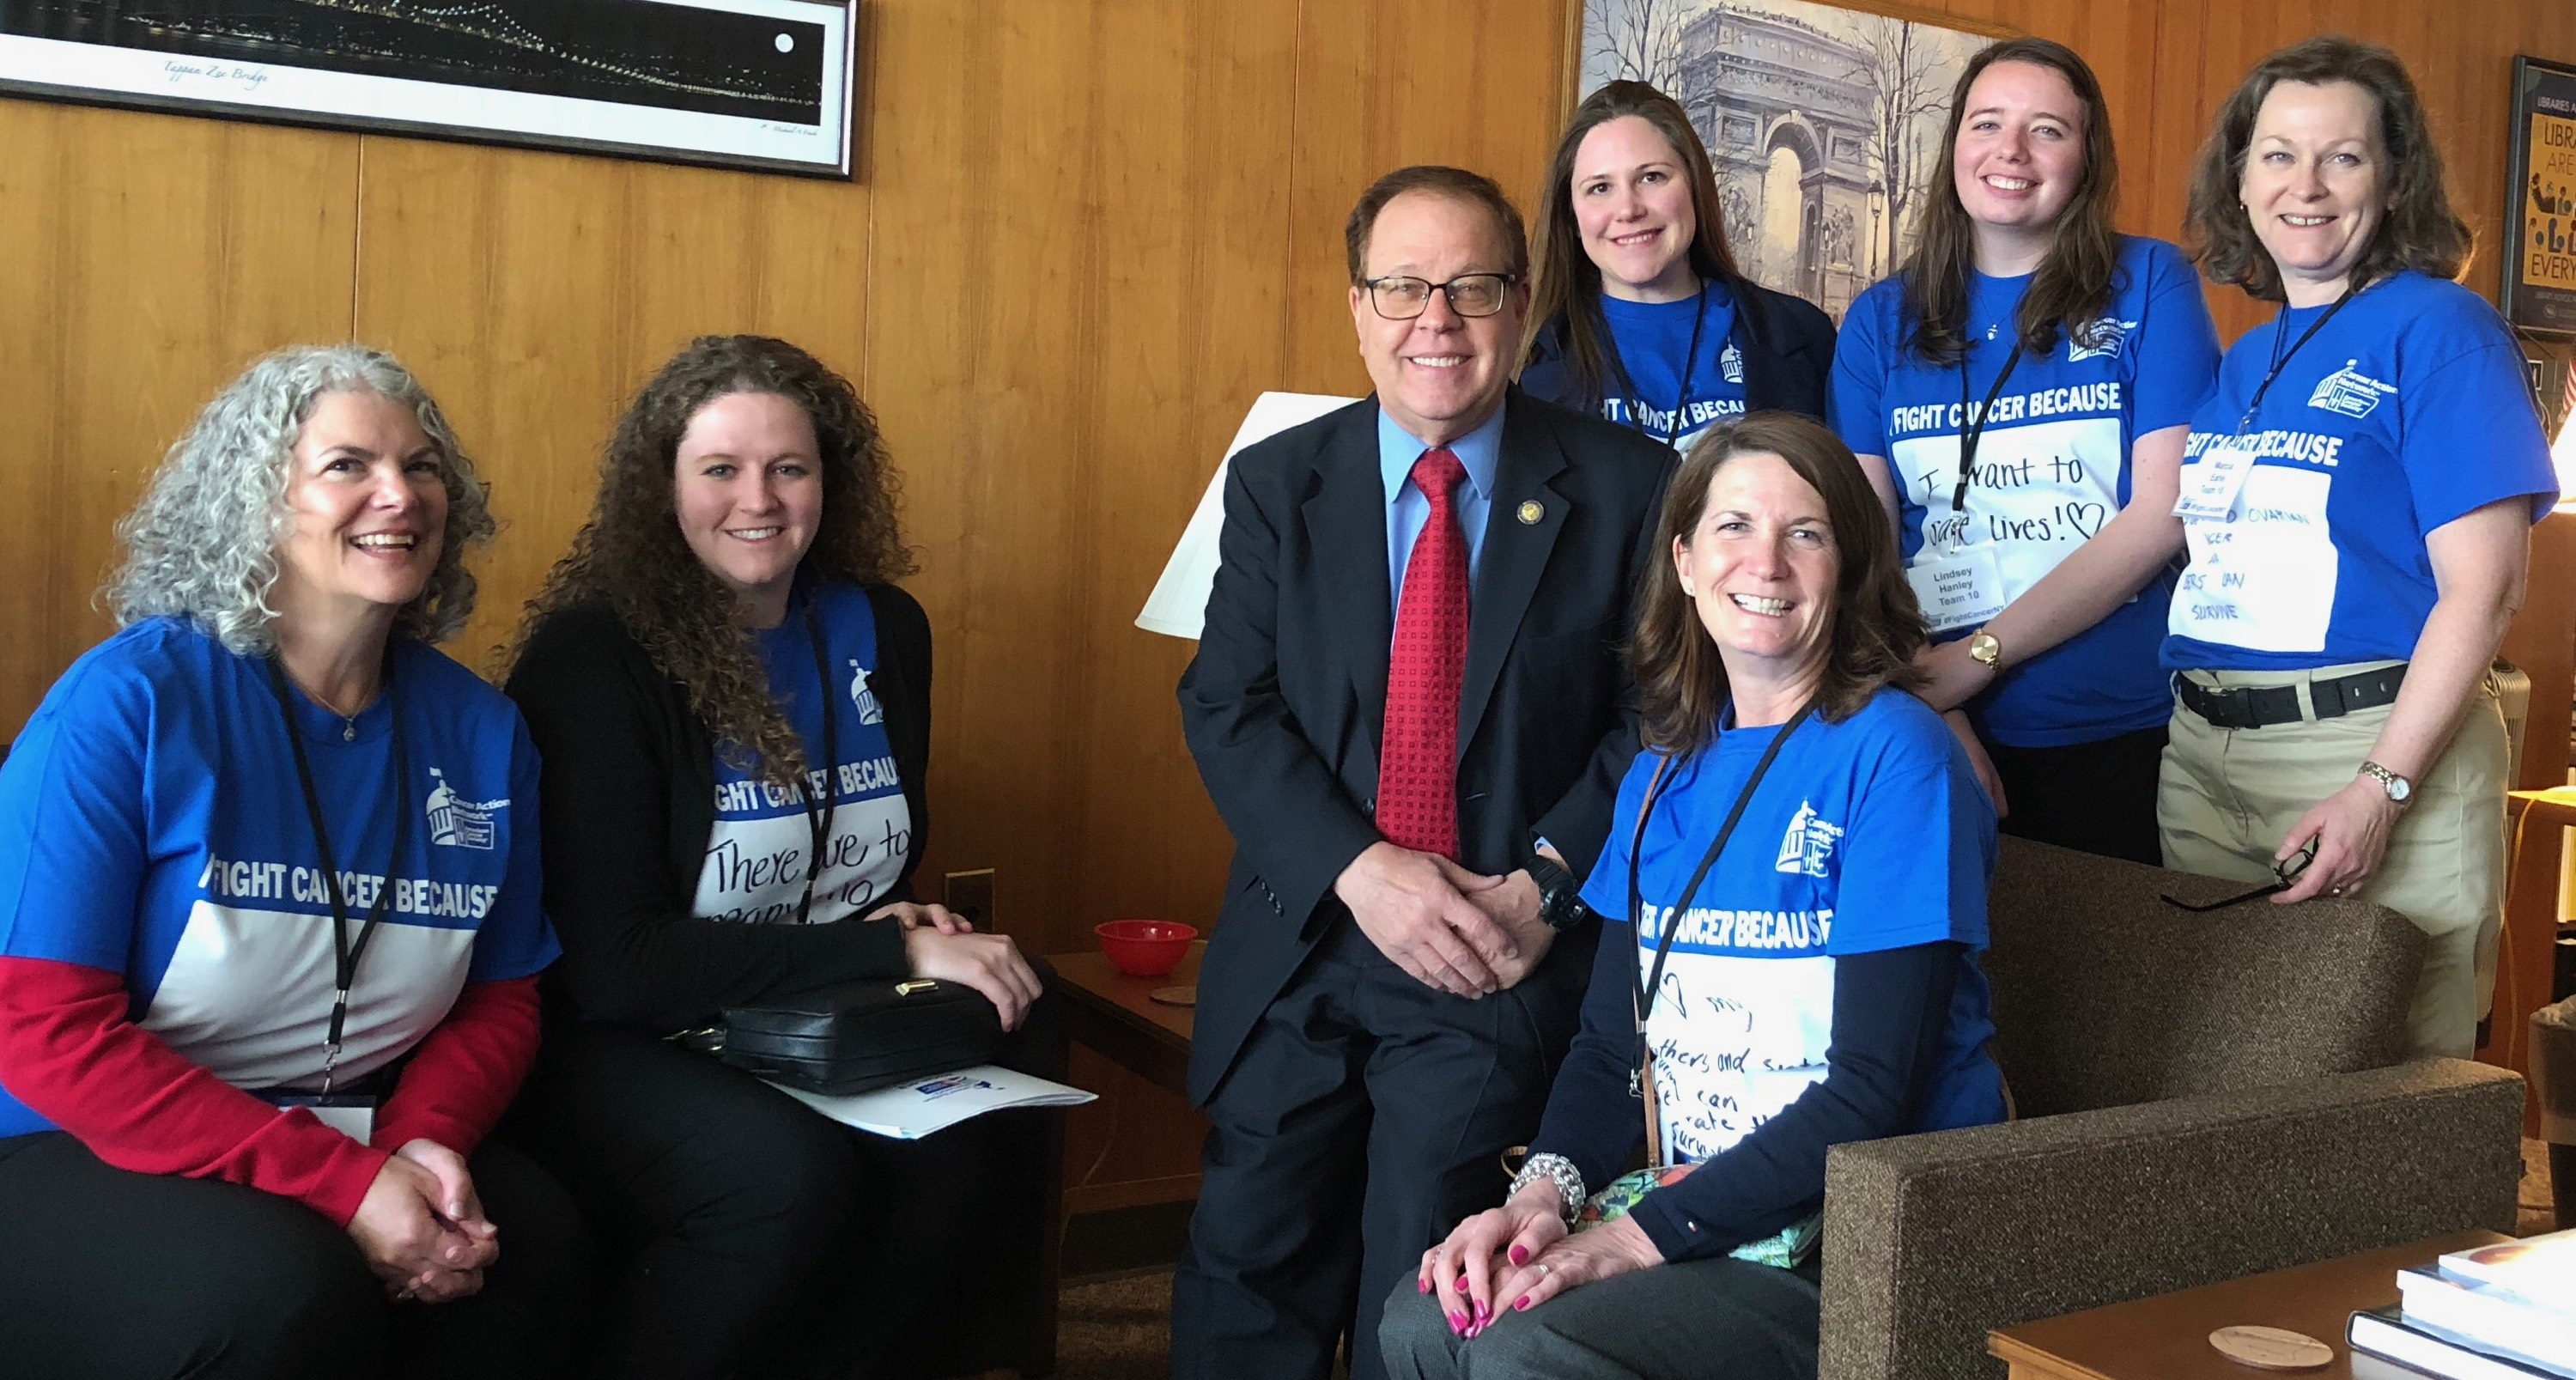 Assemblyman Abinanti met with representatives of the Cancer Action Network in Albany.